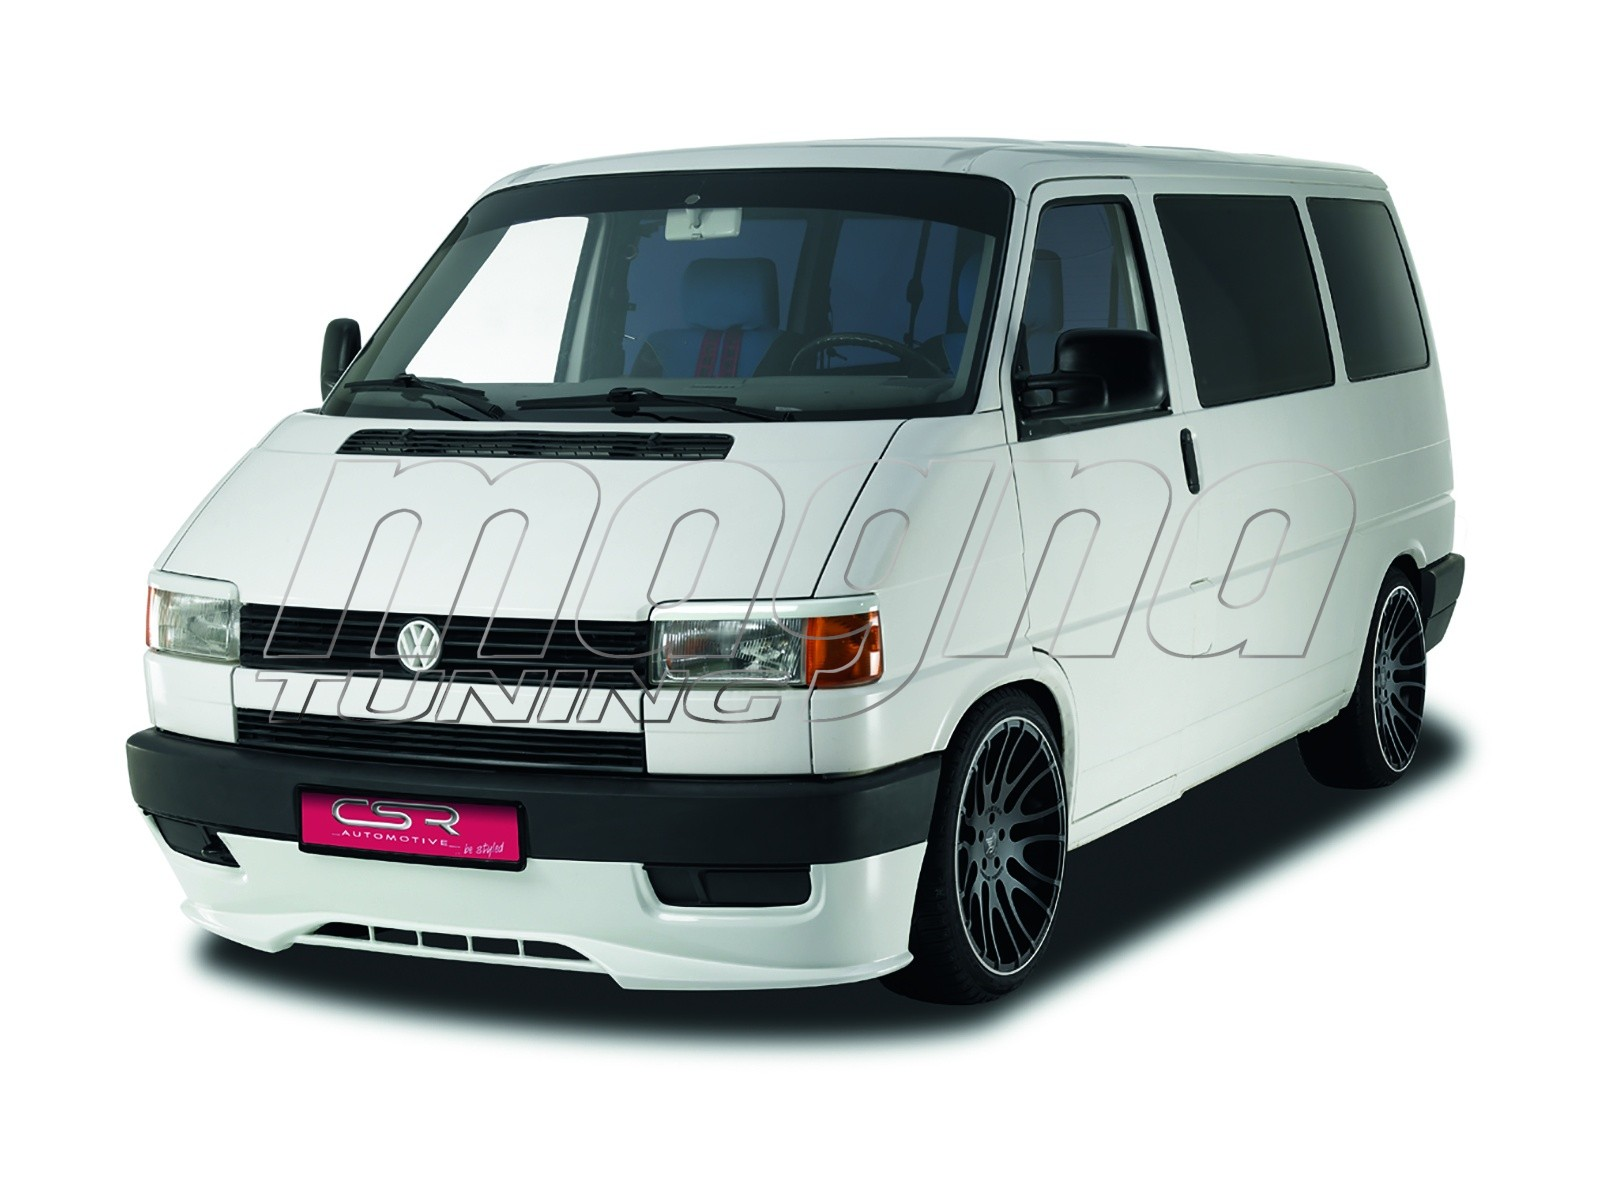 vw transporter t4 sport body kit. Black Bedroom Furniture Sets. Home Design Ideas